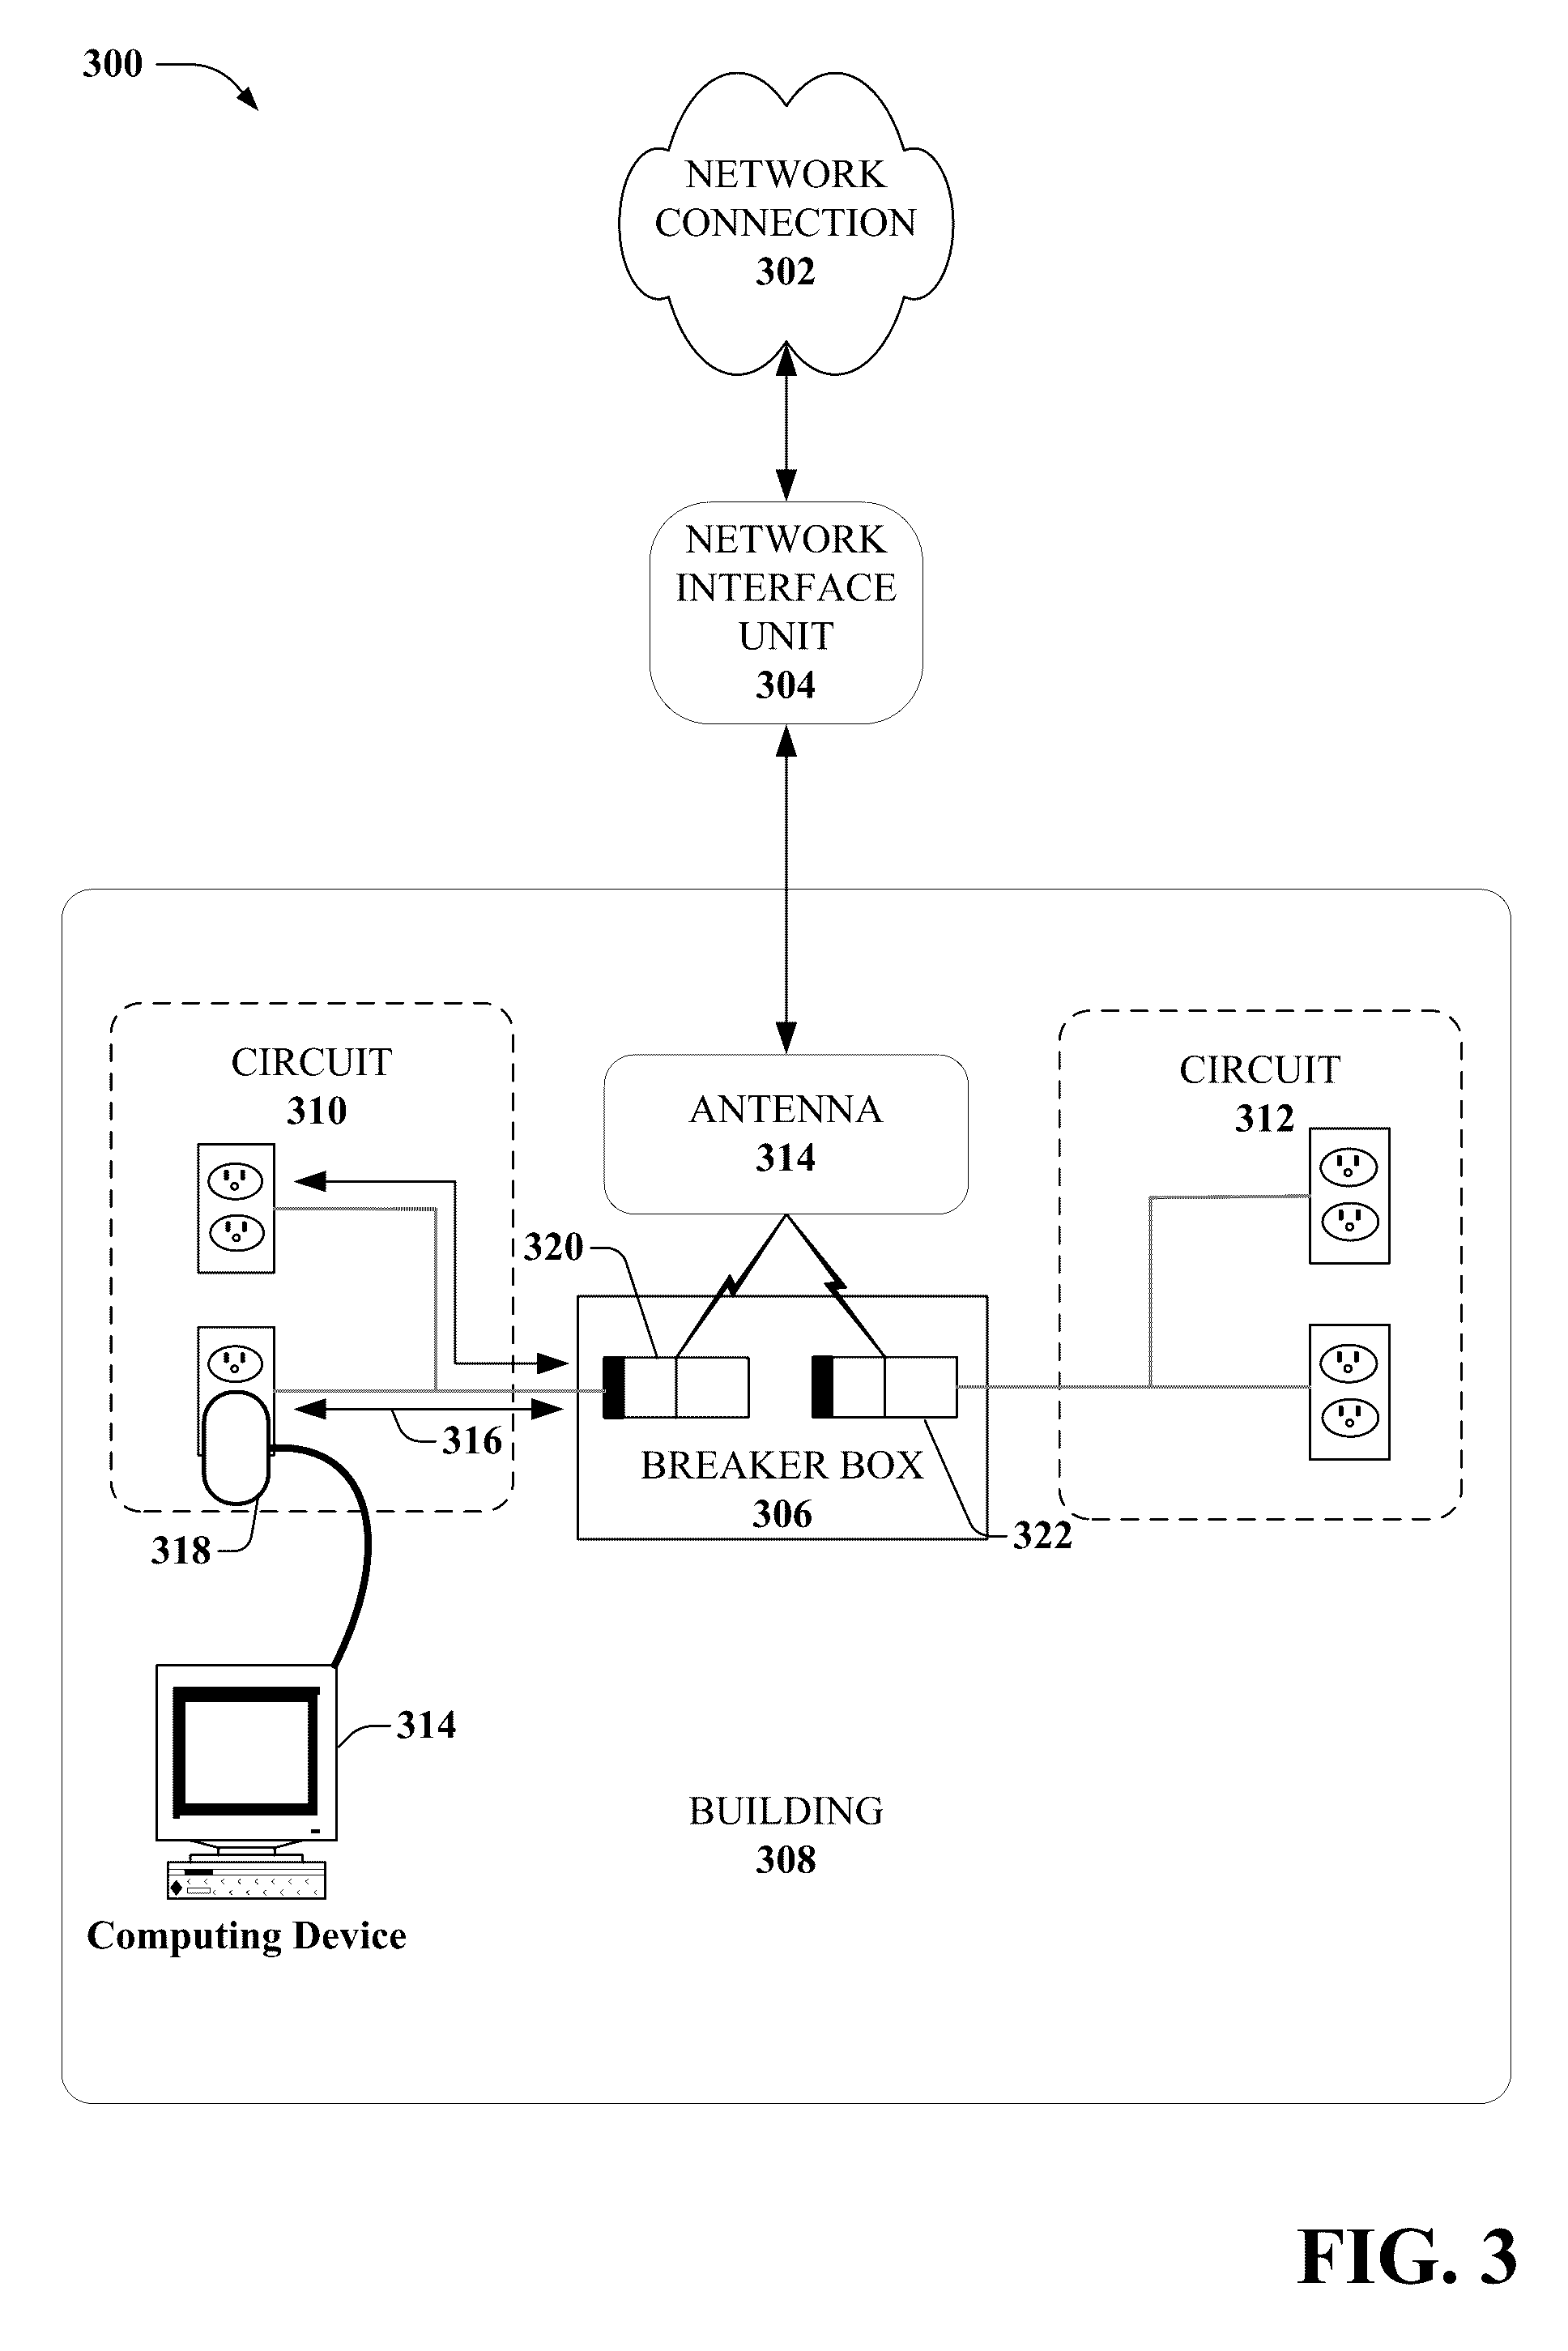 Patent Us 9685992 B2 Hybrid Circuit By Utc Fire Security Americas Corporation Inc